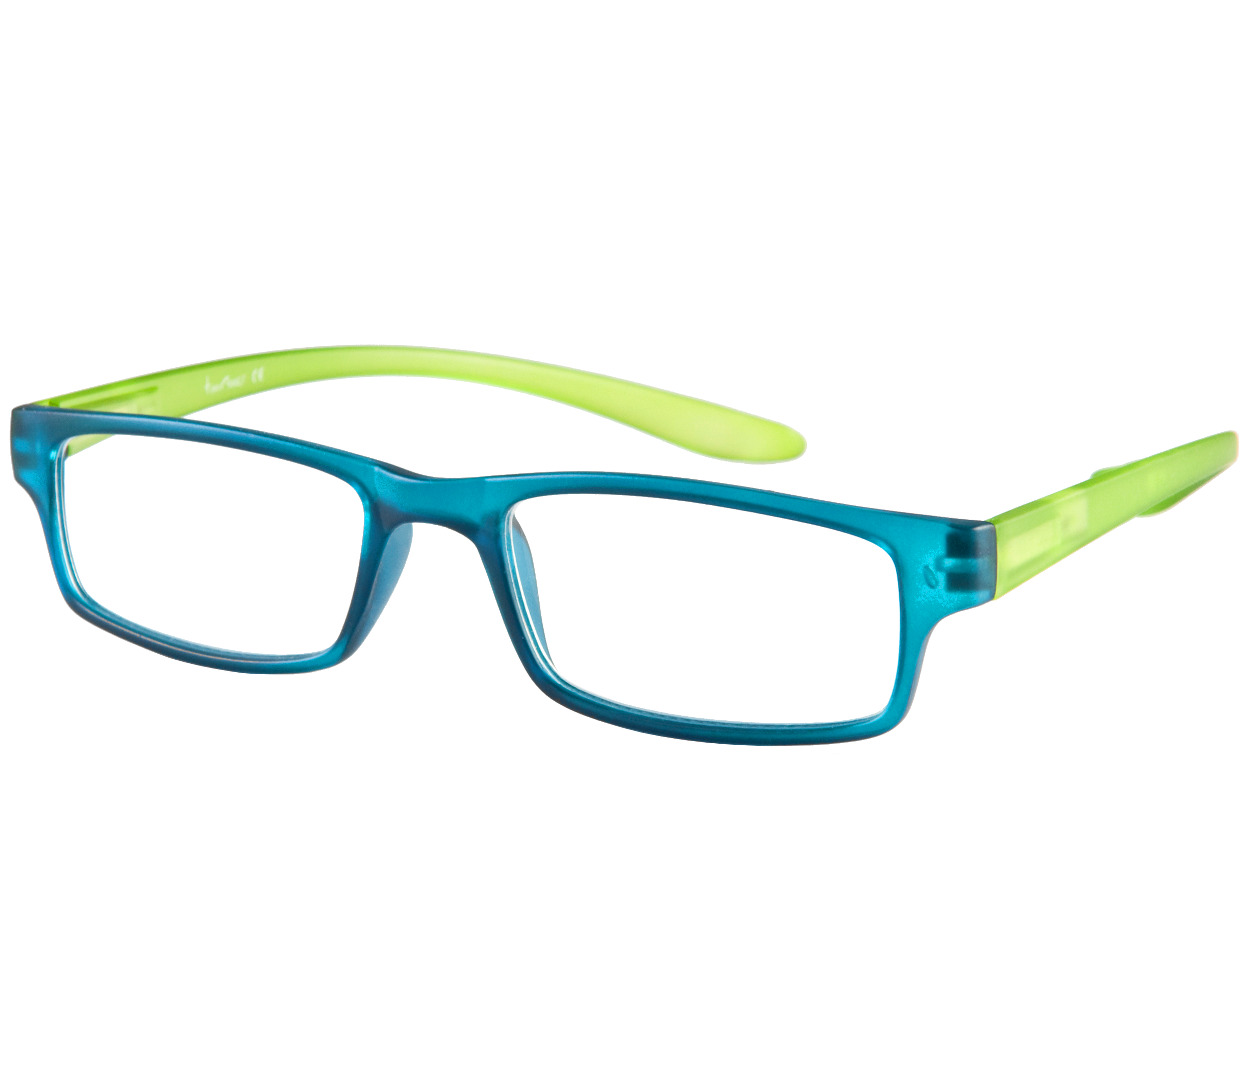 Main Image (Angle) - Swing (Blue) Neck Hanging Reading Glasses